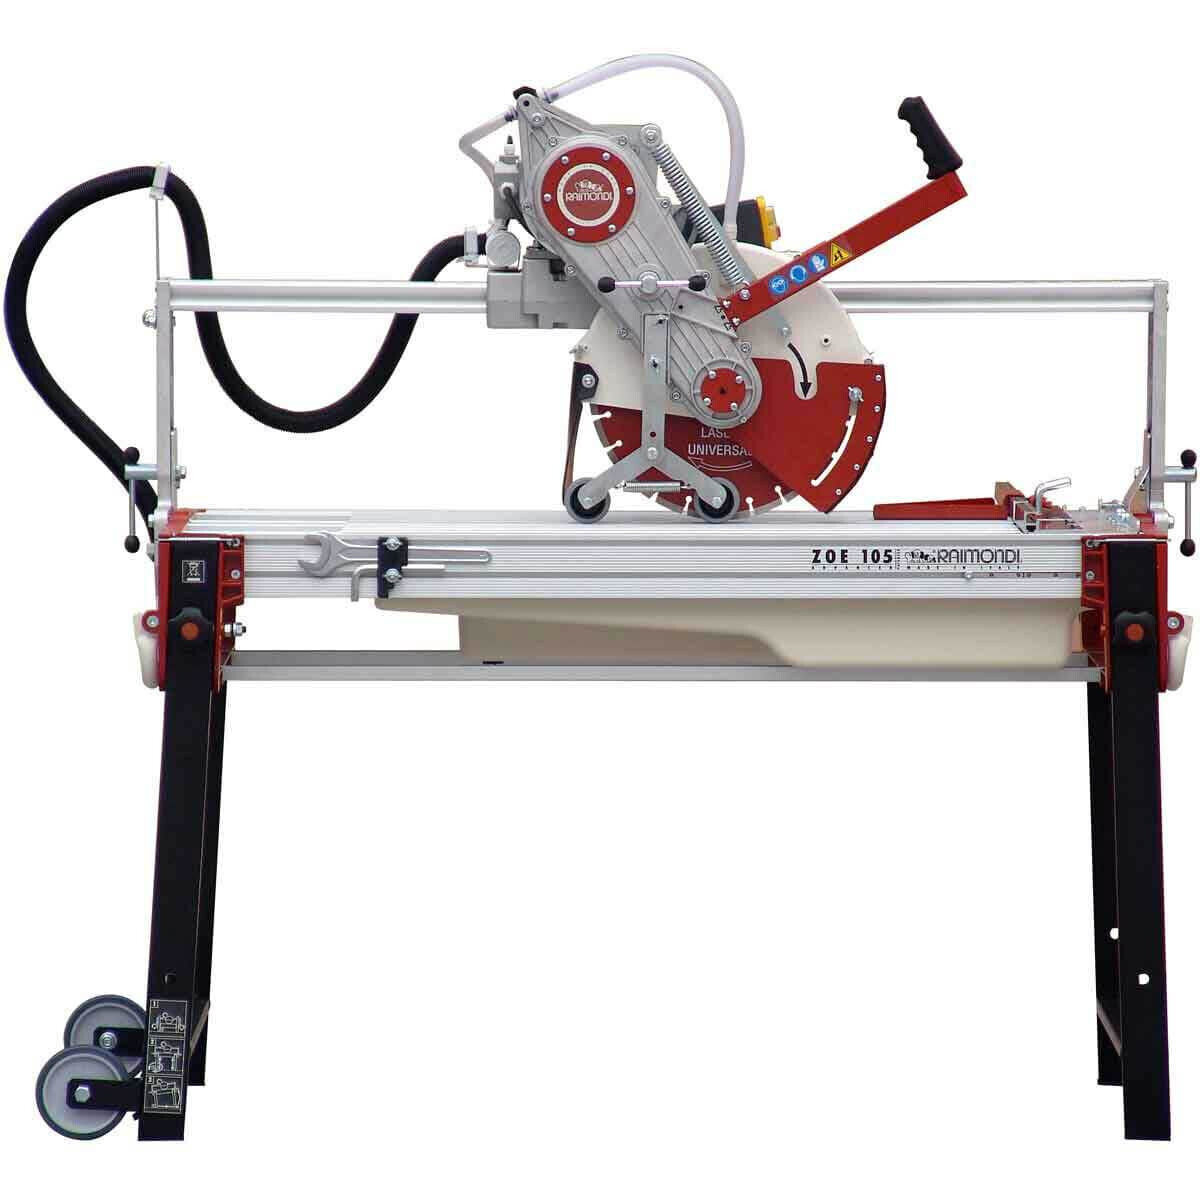 Raimondi Zipper Advanced 105 Rail Saw side view